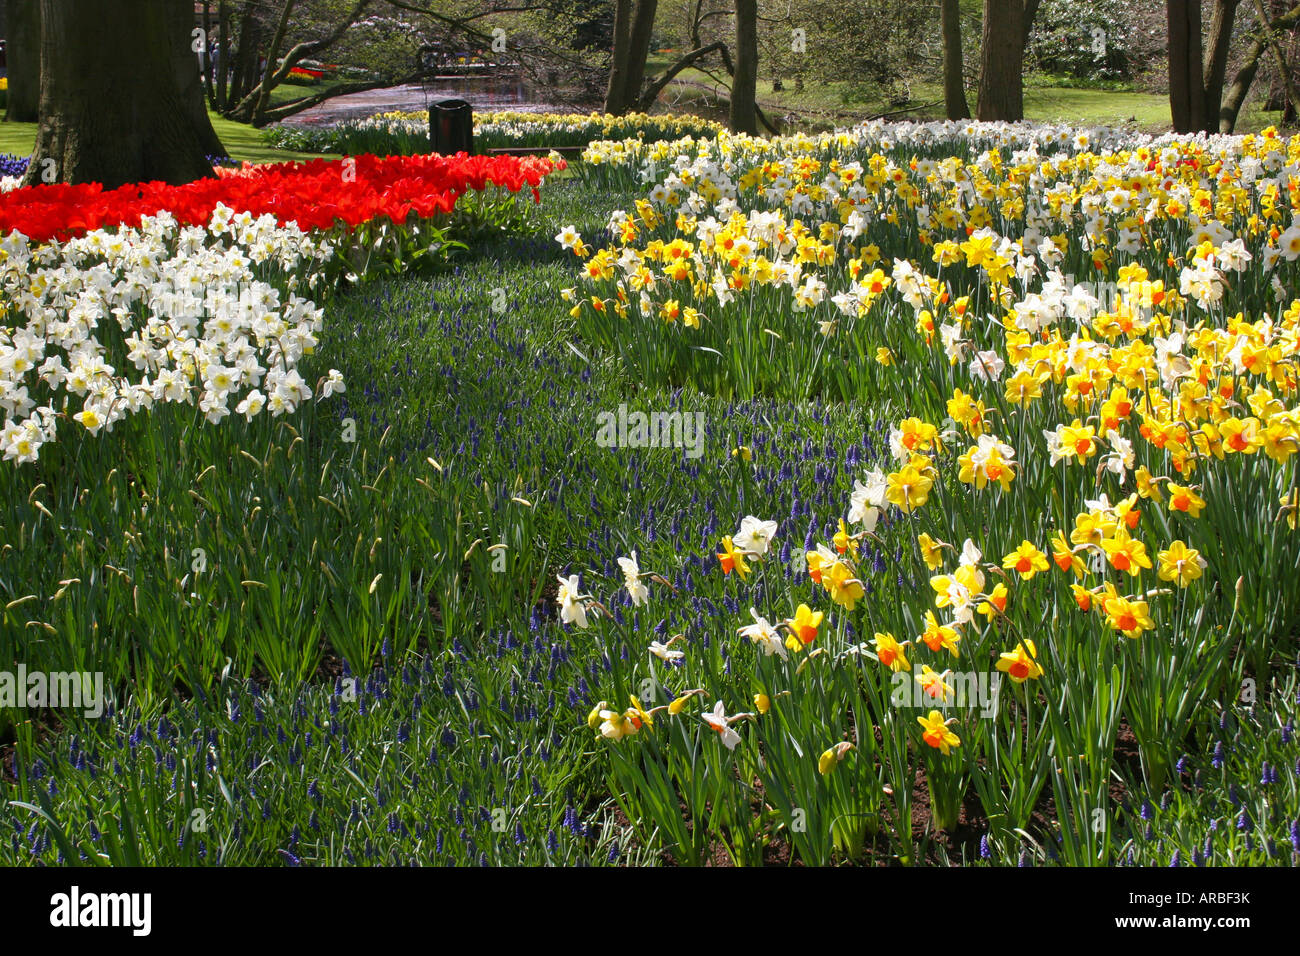 Many Different Types Of Flowers Are On Display During Spring In